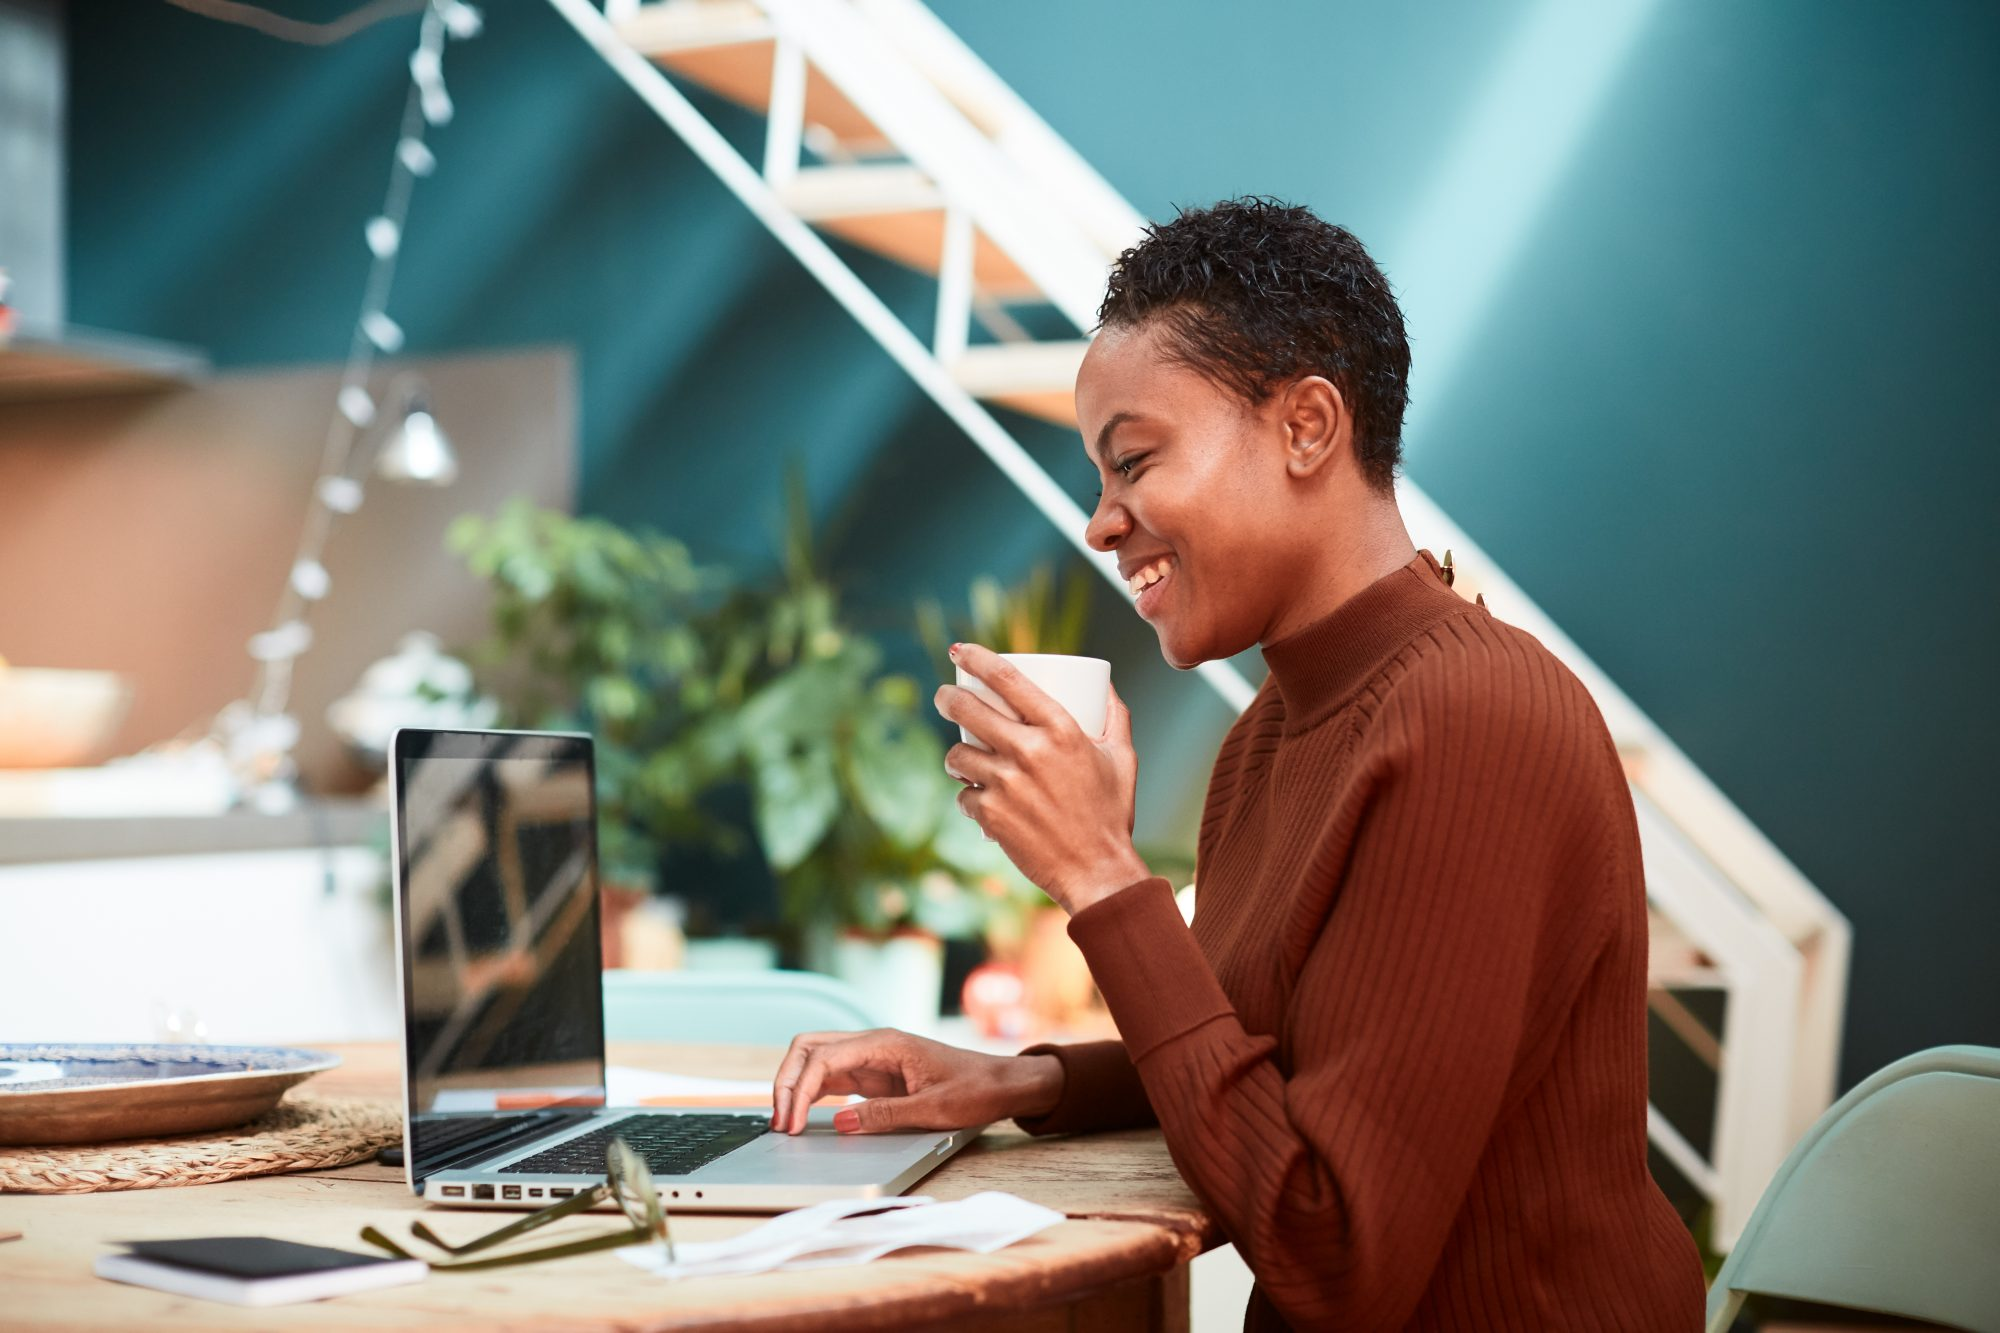 smiling woman with coffee cup looking at computer